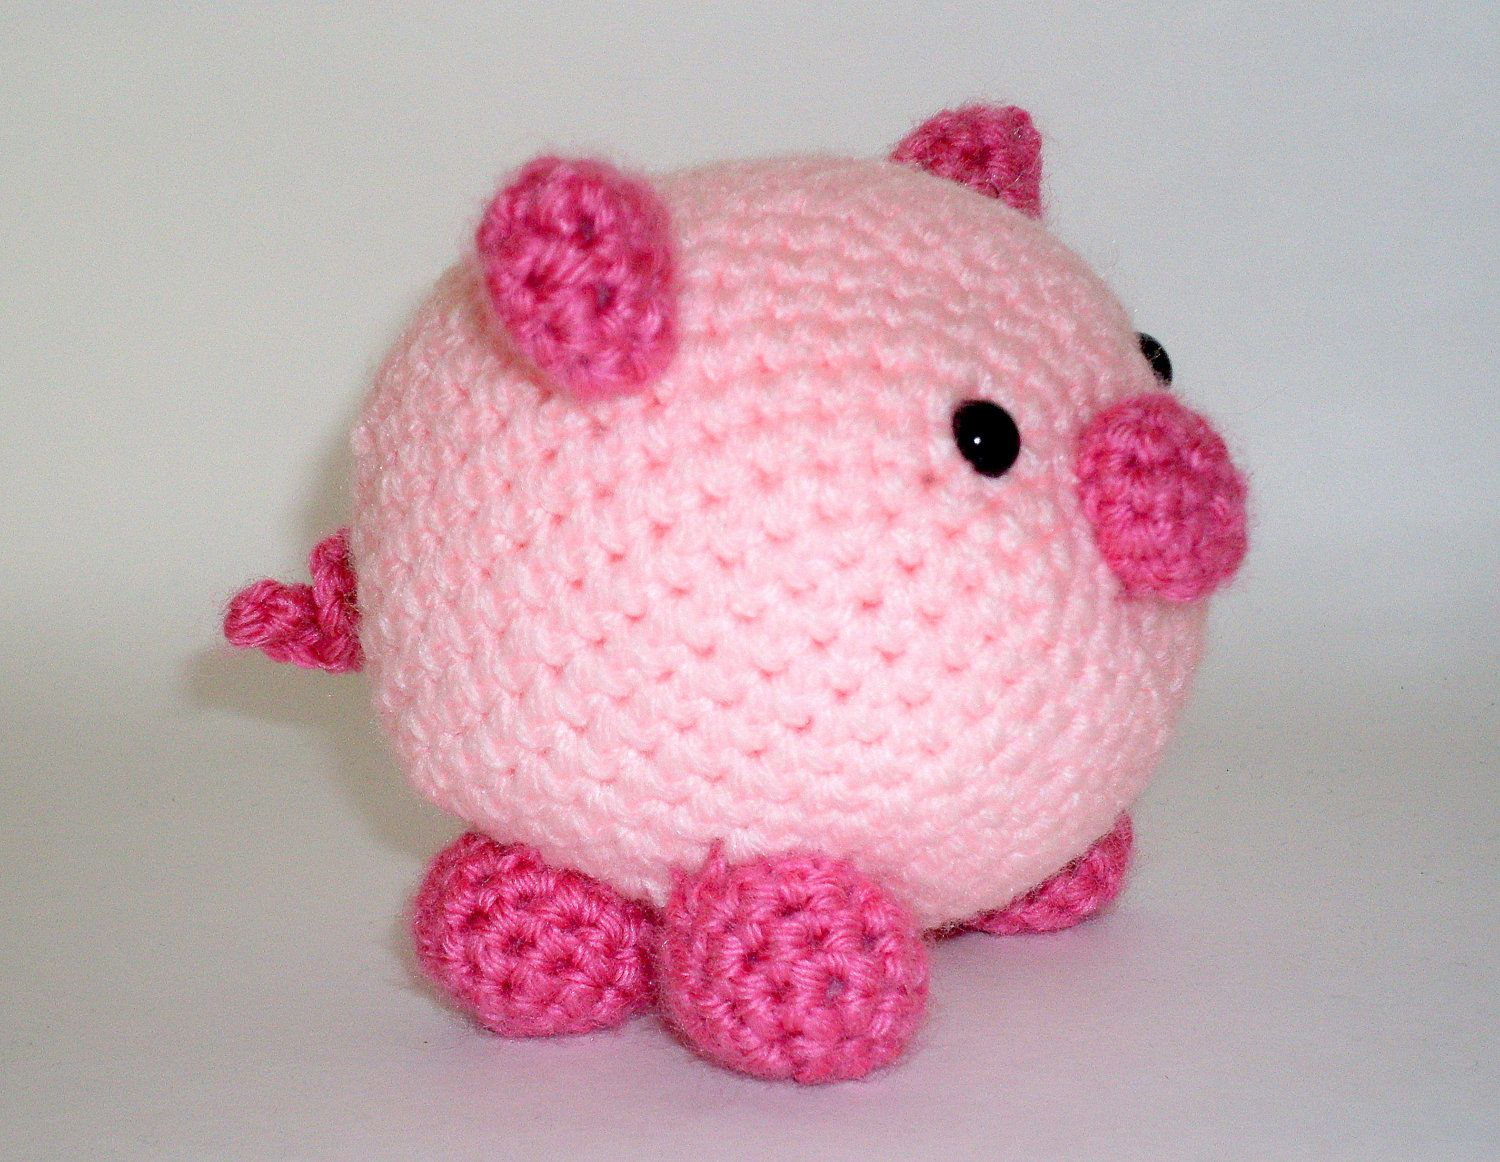 Pig Amigurumi Crochet Stuffed Animal Pink by HookAndStitches. $20.00 ...